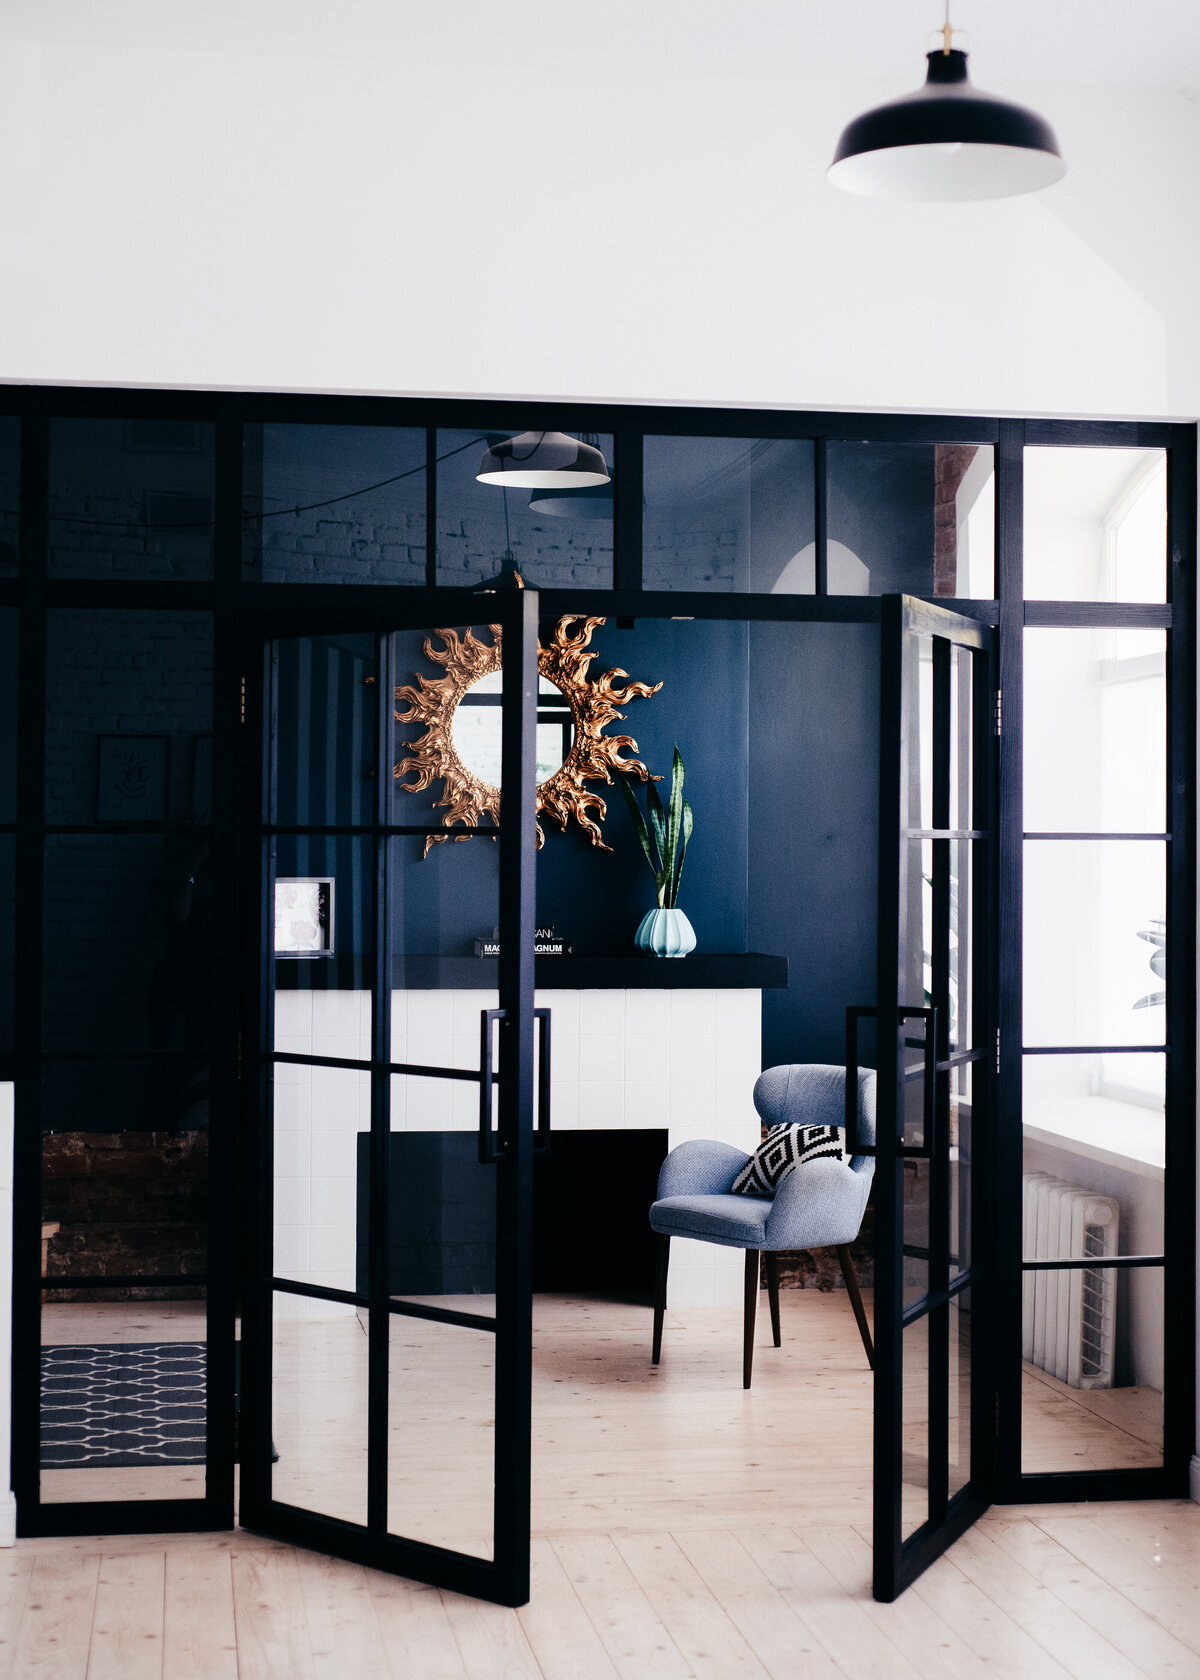 Navy painted home office with black crittal doors styled by an interior designer.